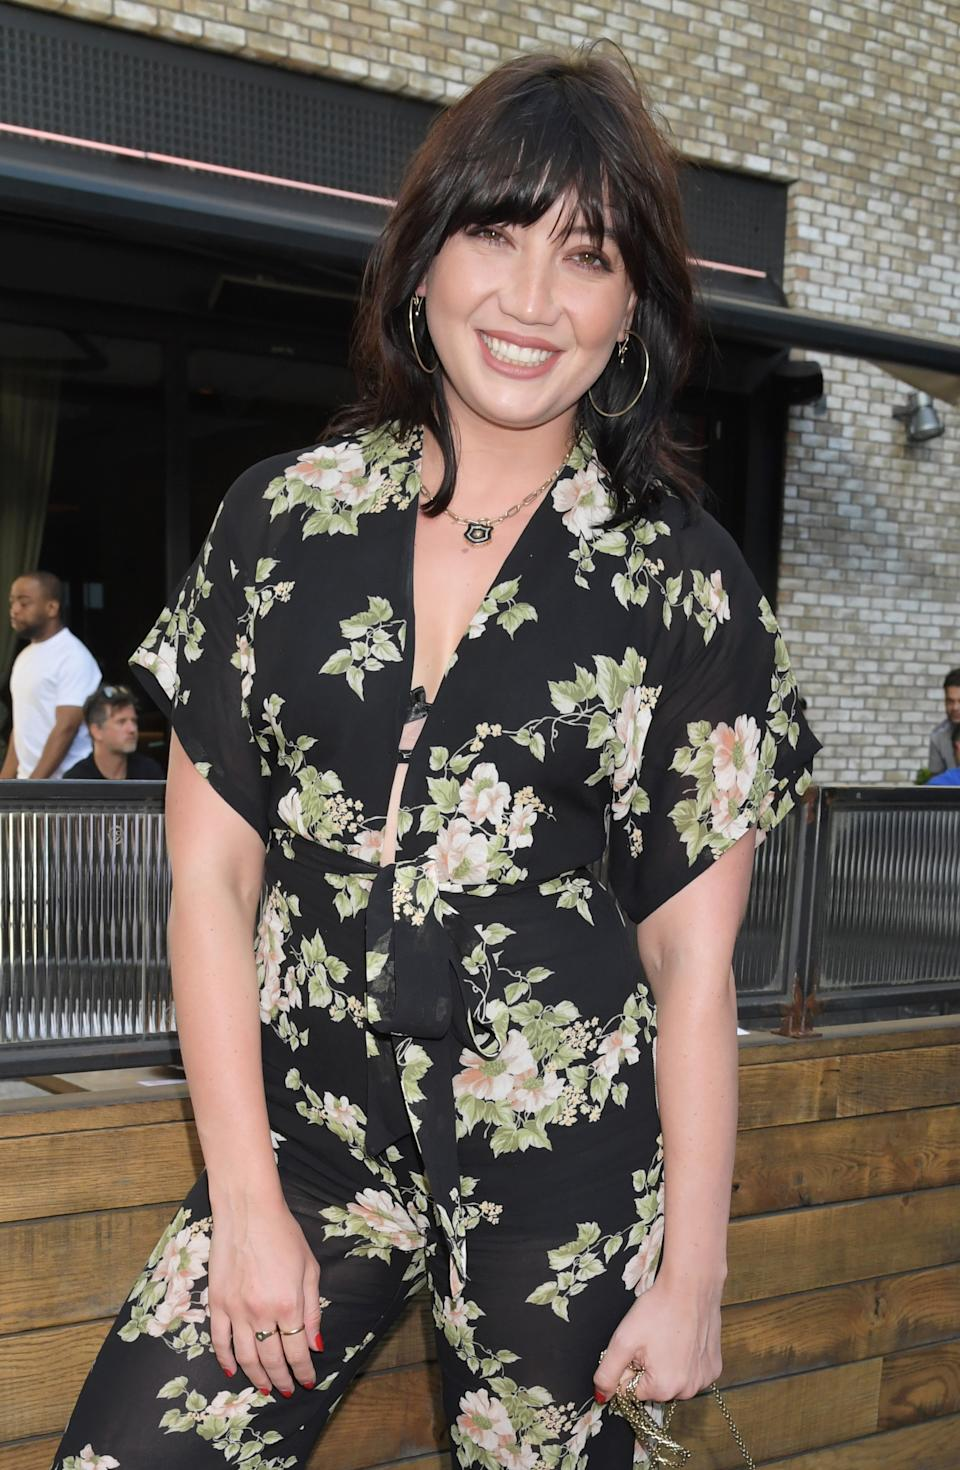 LONDON, ENGLAND - JULY 17:  Daisy Lowe attends the launch of Giz & Green Pizza Pies Pop-Up at Passo on July 17, 2020 in London, England. (Photo by David M. Benett/Dave Benett/Getty Images for PASSO)